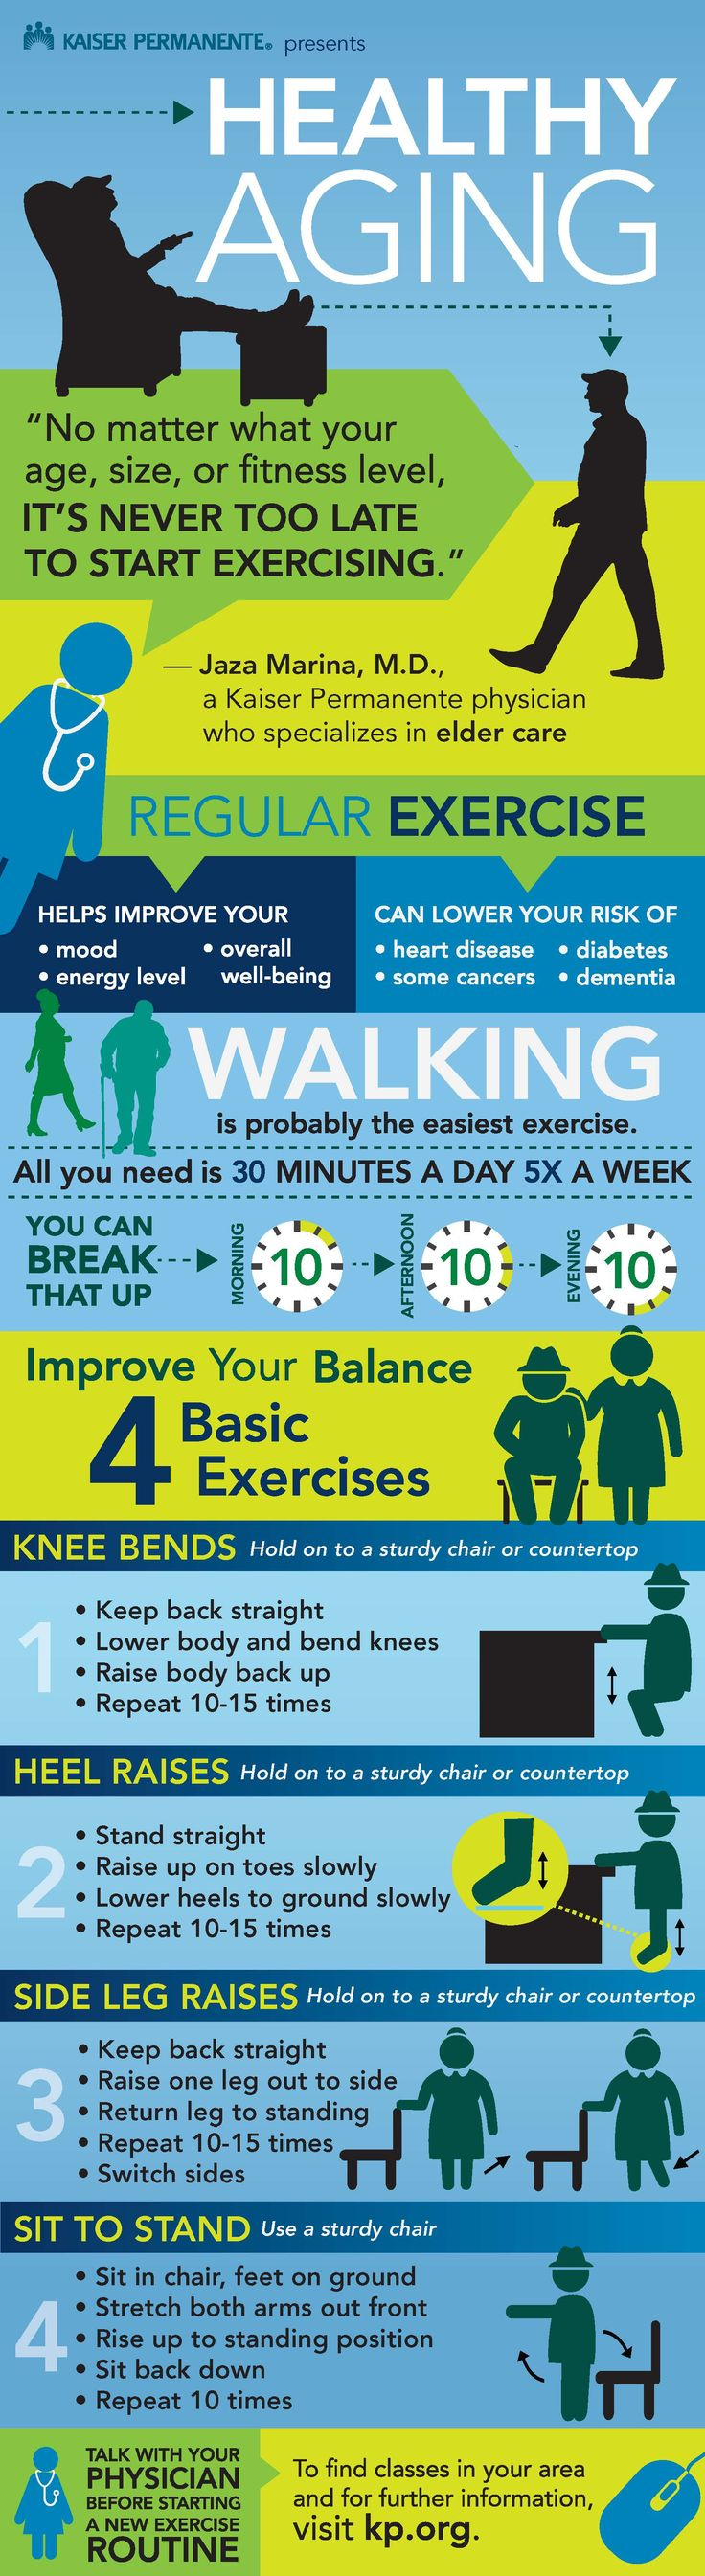 Not in the habit of exercising? Time for a new habit. Check out these healthy aging exercise tips for older adults to improve strength and balance. #YoungAtHeart